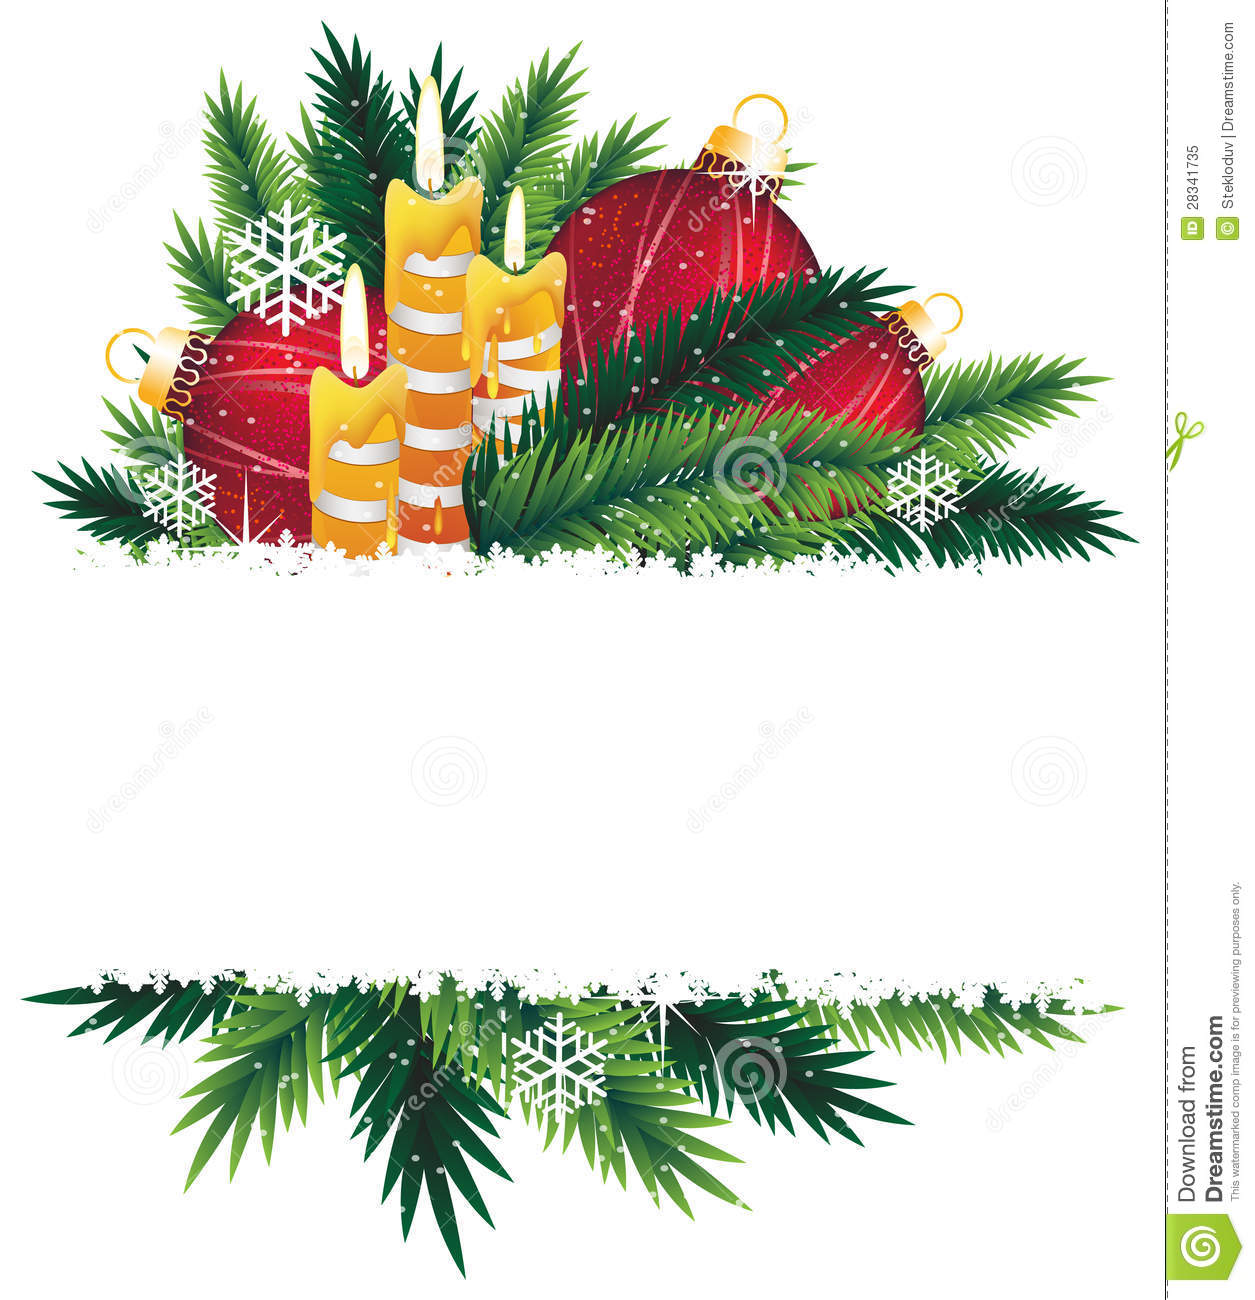 Christmas Decorations With Tree Branches: Christmas Decorations And Pine Tree Branches. Stock Vector